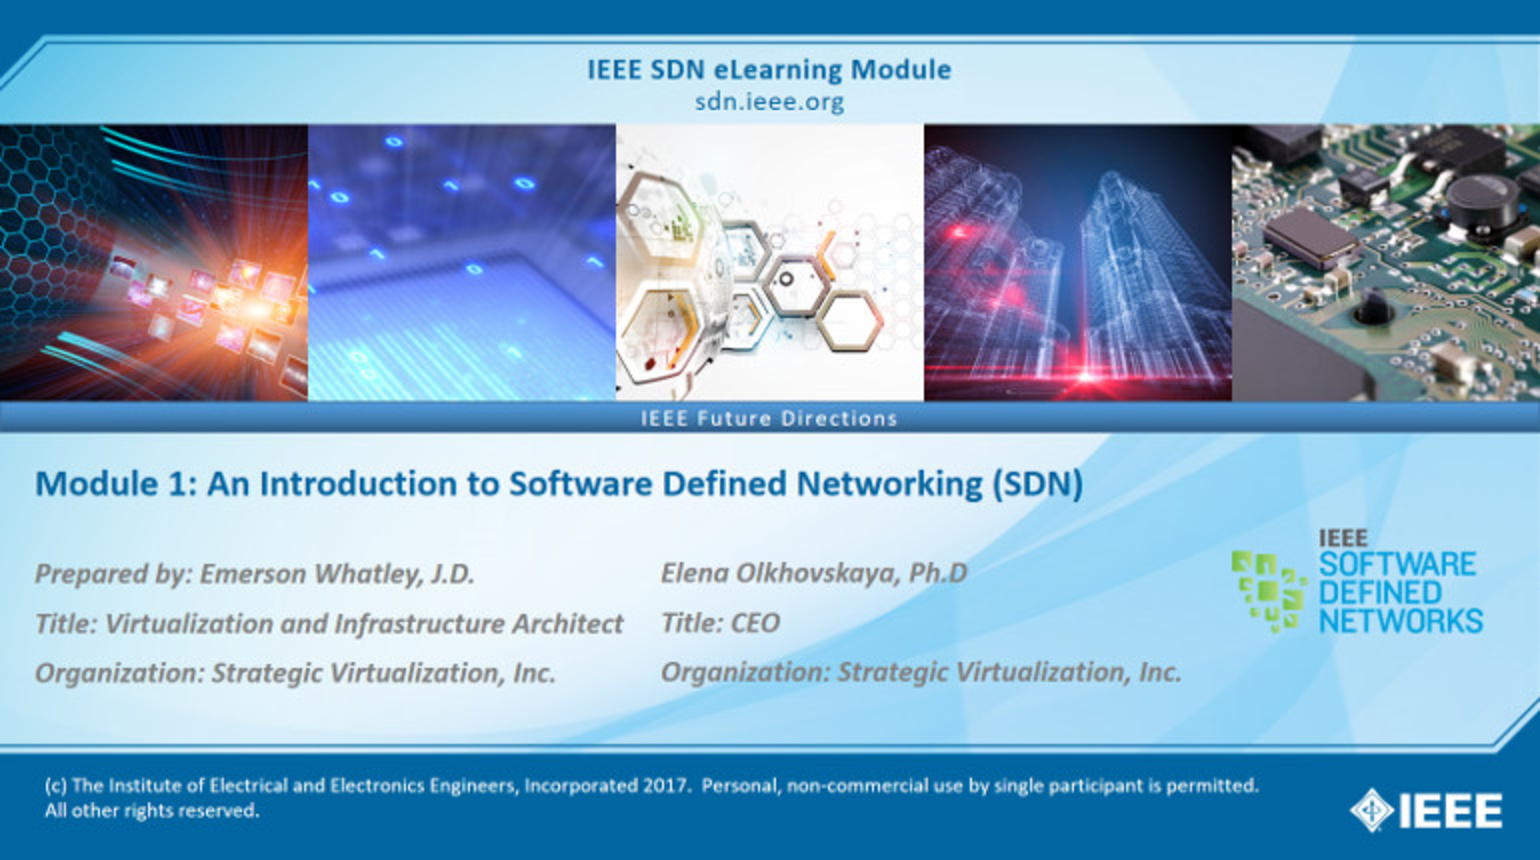 IEEE SDN: ONOS Module 1 - An Introduction to Software Defined Networking (SDN)